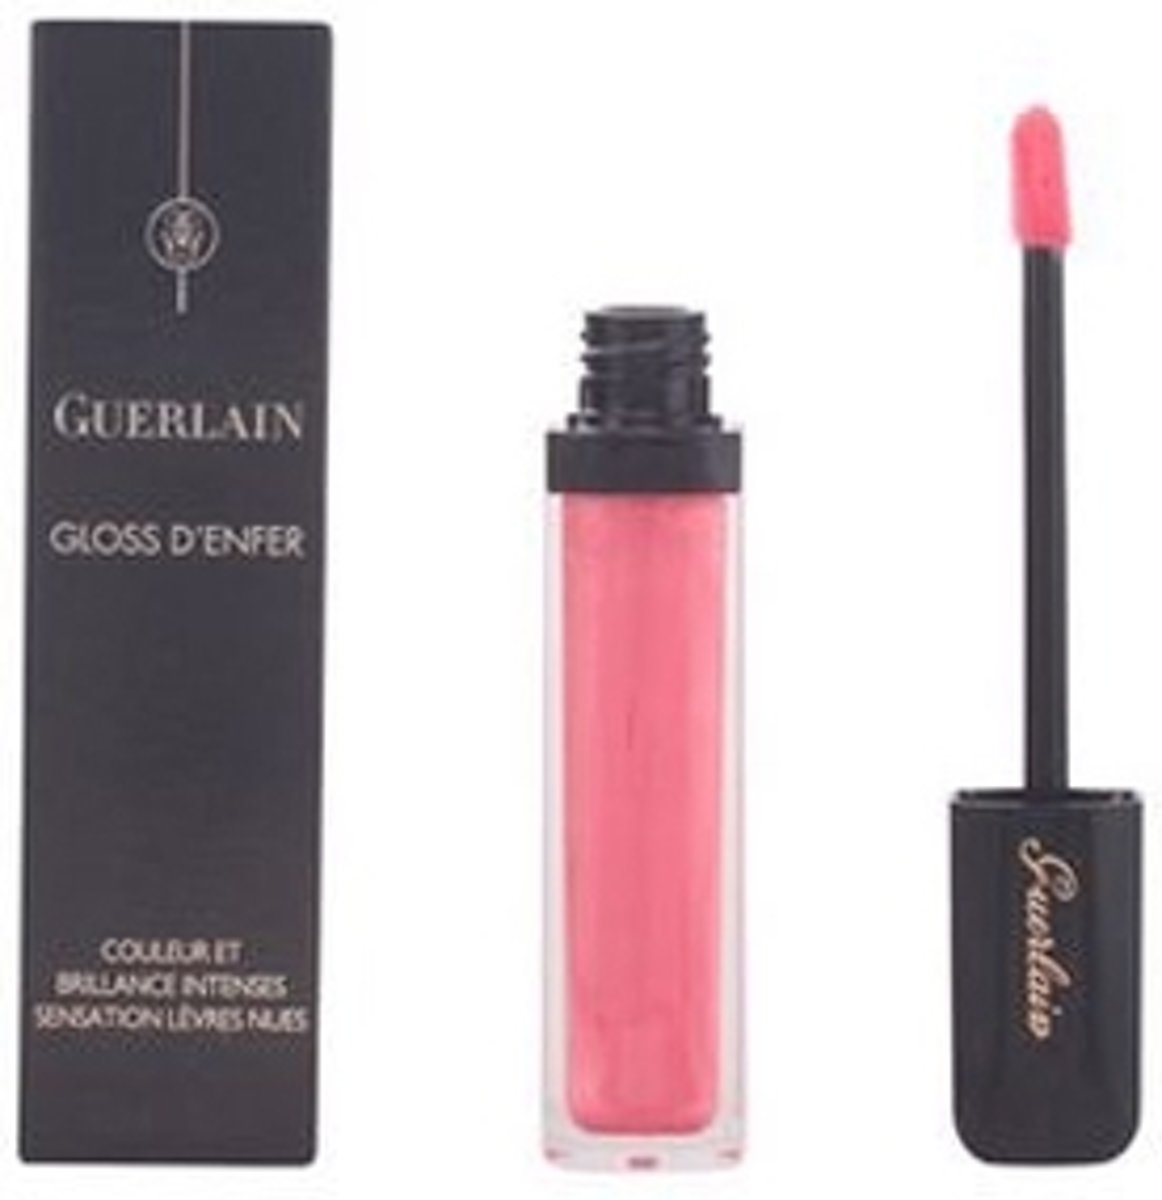 Guerlain Gloss DEnfer Maxi Shine Intense Colour - Rosy Bang - Lipgloss